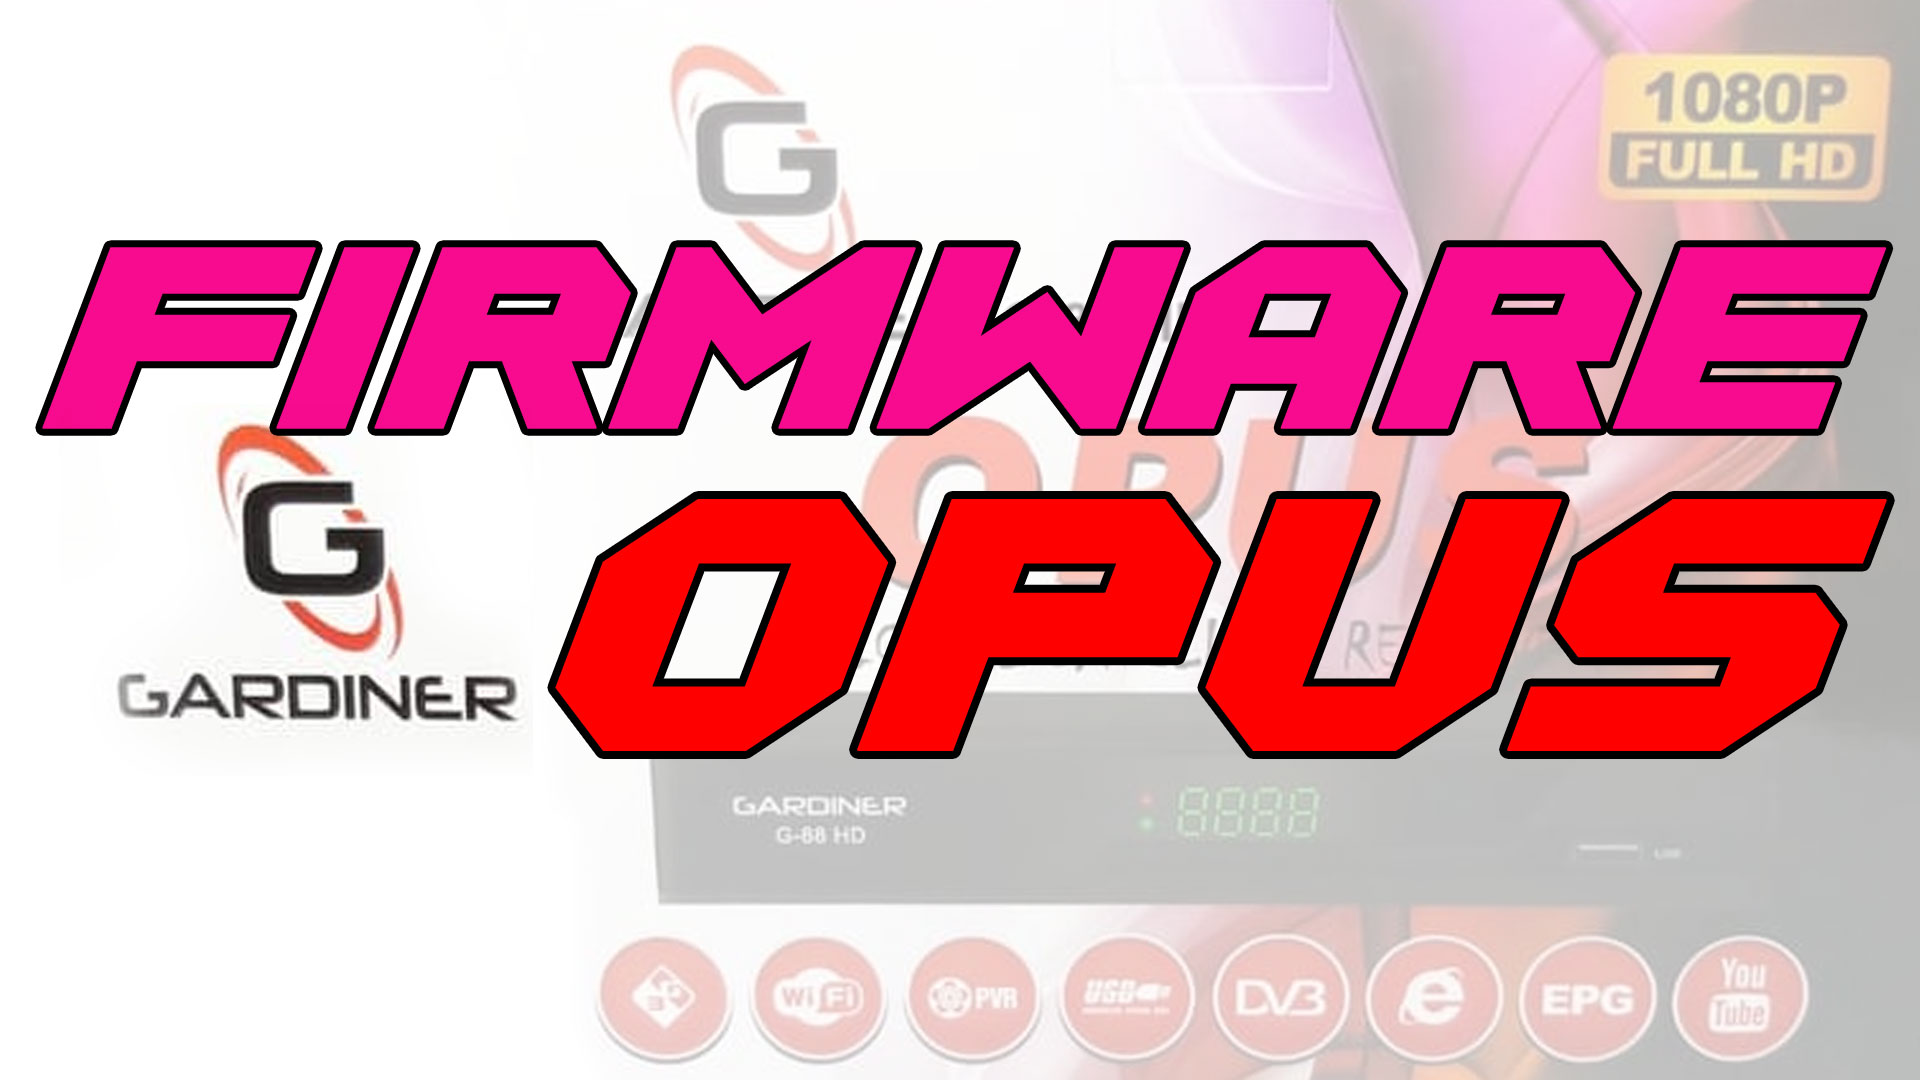 Download Firmware Receiver Gardiner G-88 HD Opus SW Terbaru